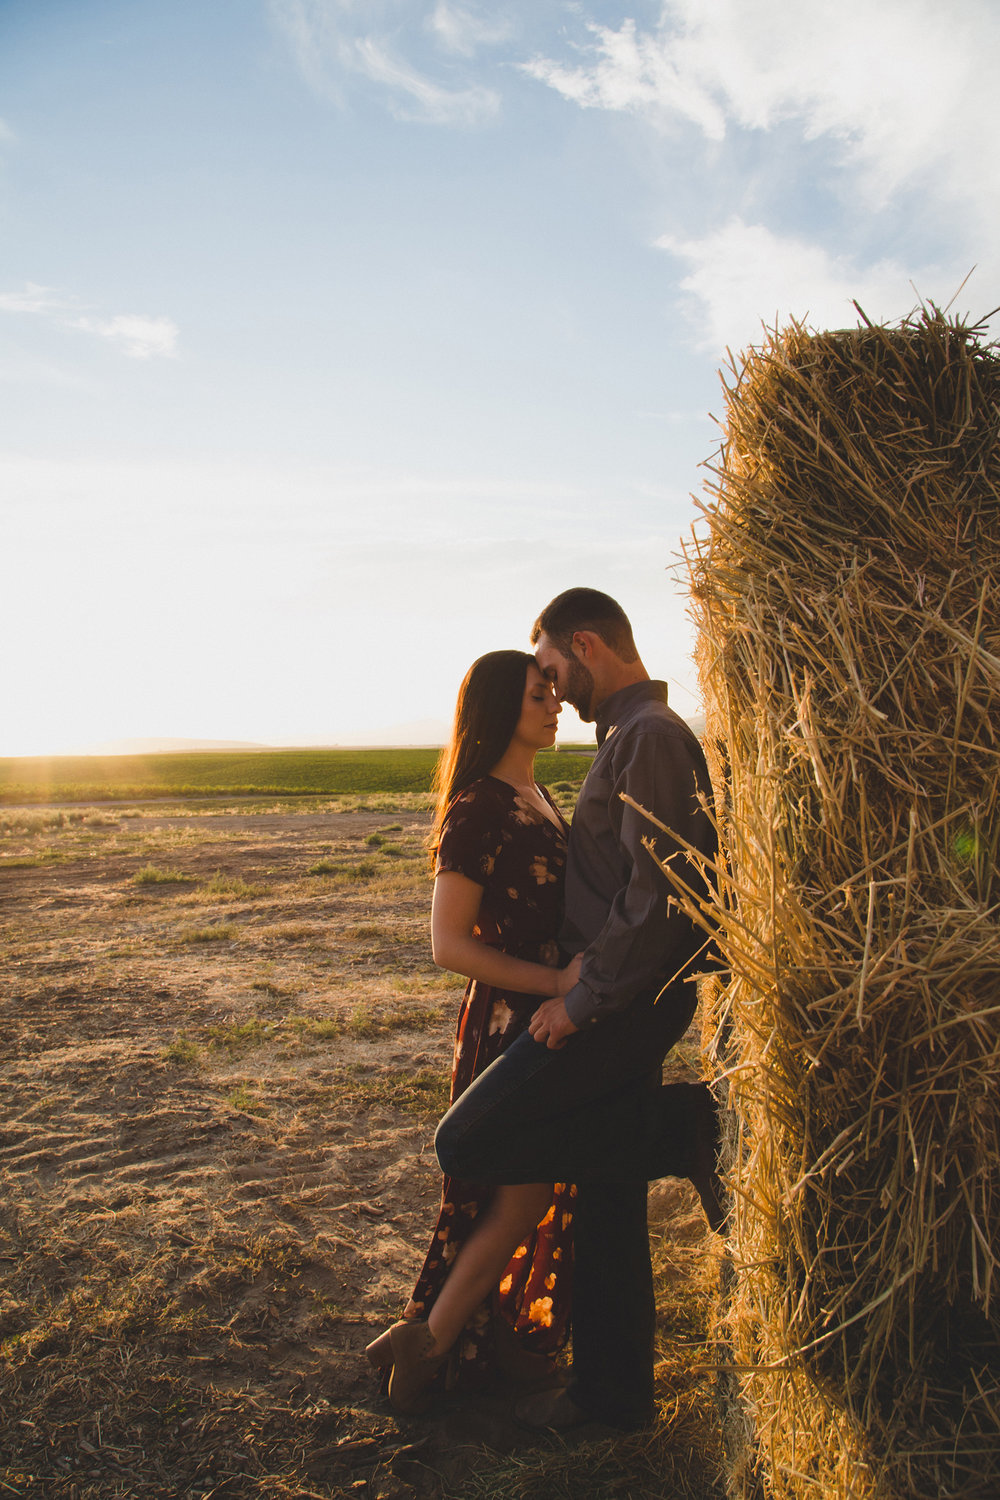 Tri Cities sunset engagement session_desert engagement_Vineyard engagement_Jordyn and Drew_Jordan Edens Photography_JEP_potato field_desert_mountains_badger mountain_fields_dirt road_hay bales_1